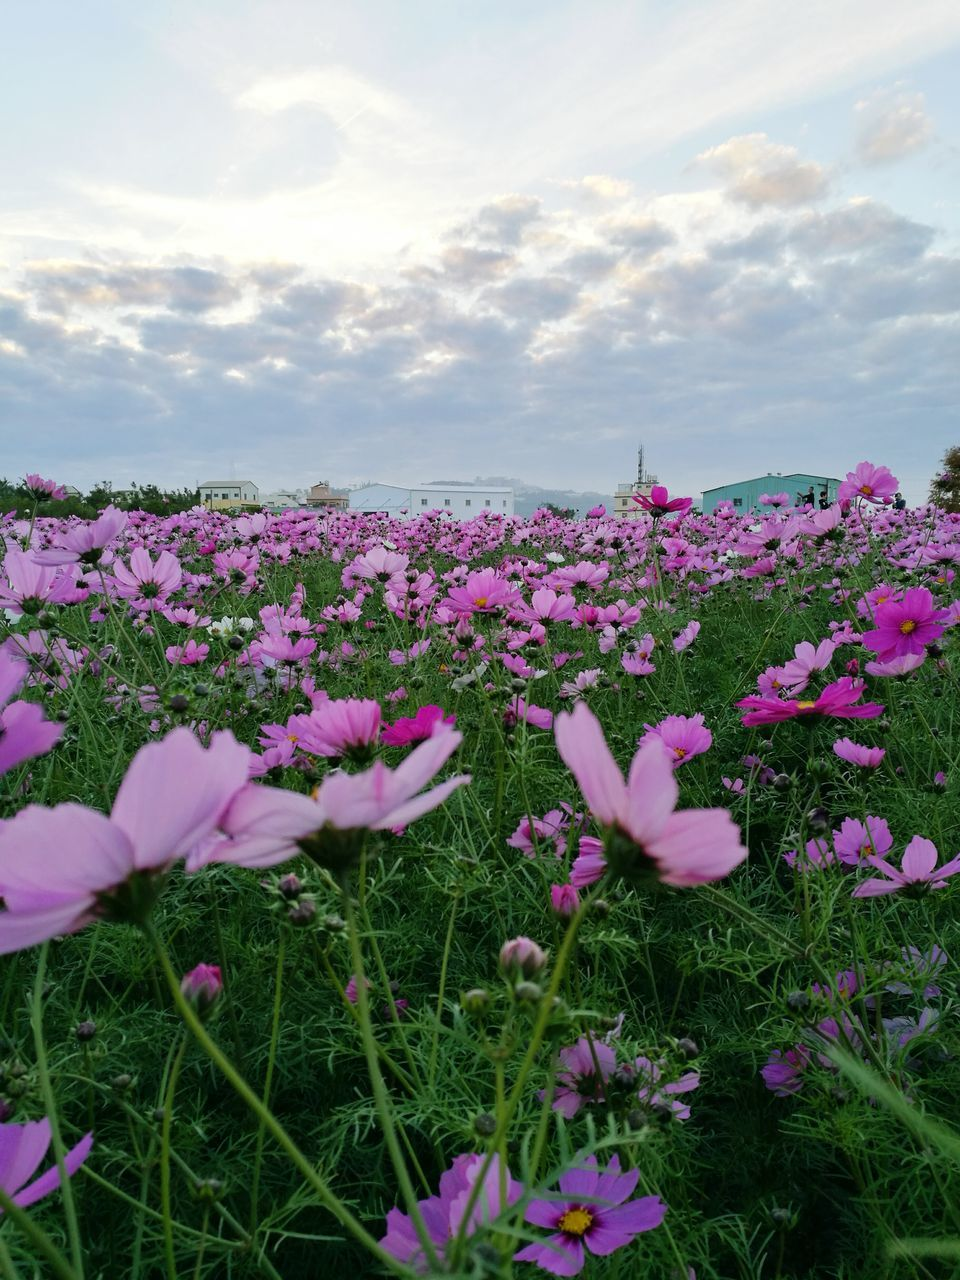 flower, beauty in nature, nature, fragility, growth, pink color, sky, cloud - sky, freshness, petal, plant, field, outdoors, purple, tranquility, no people, flower head, day, blooming, tranquil scene, scenics, cosmos flower, landscape, close-up, crocus